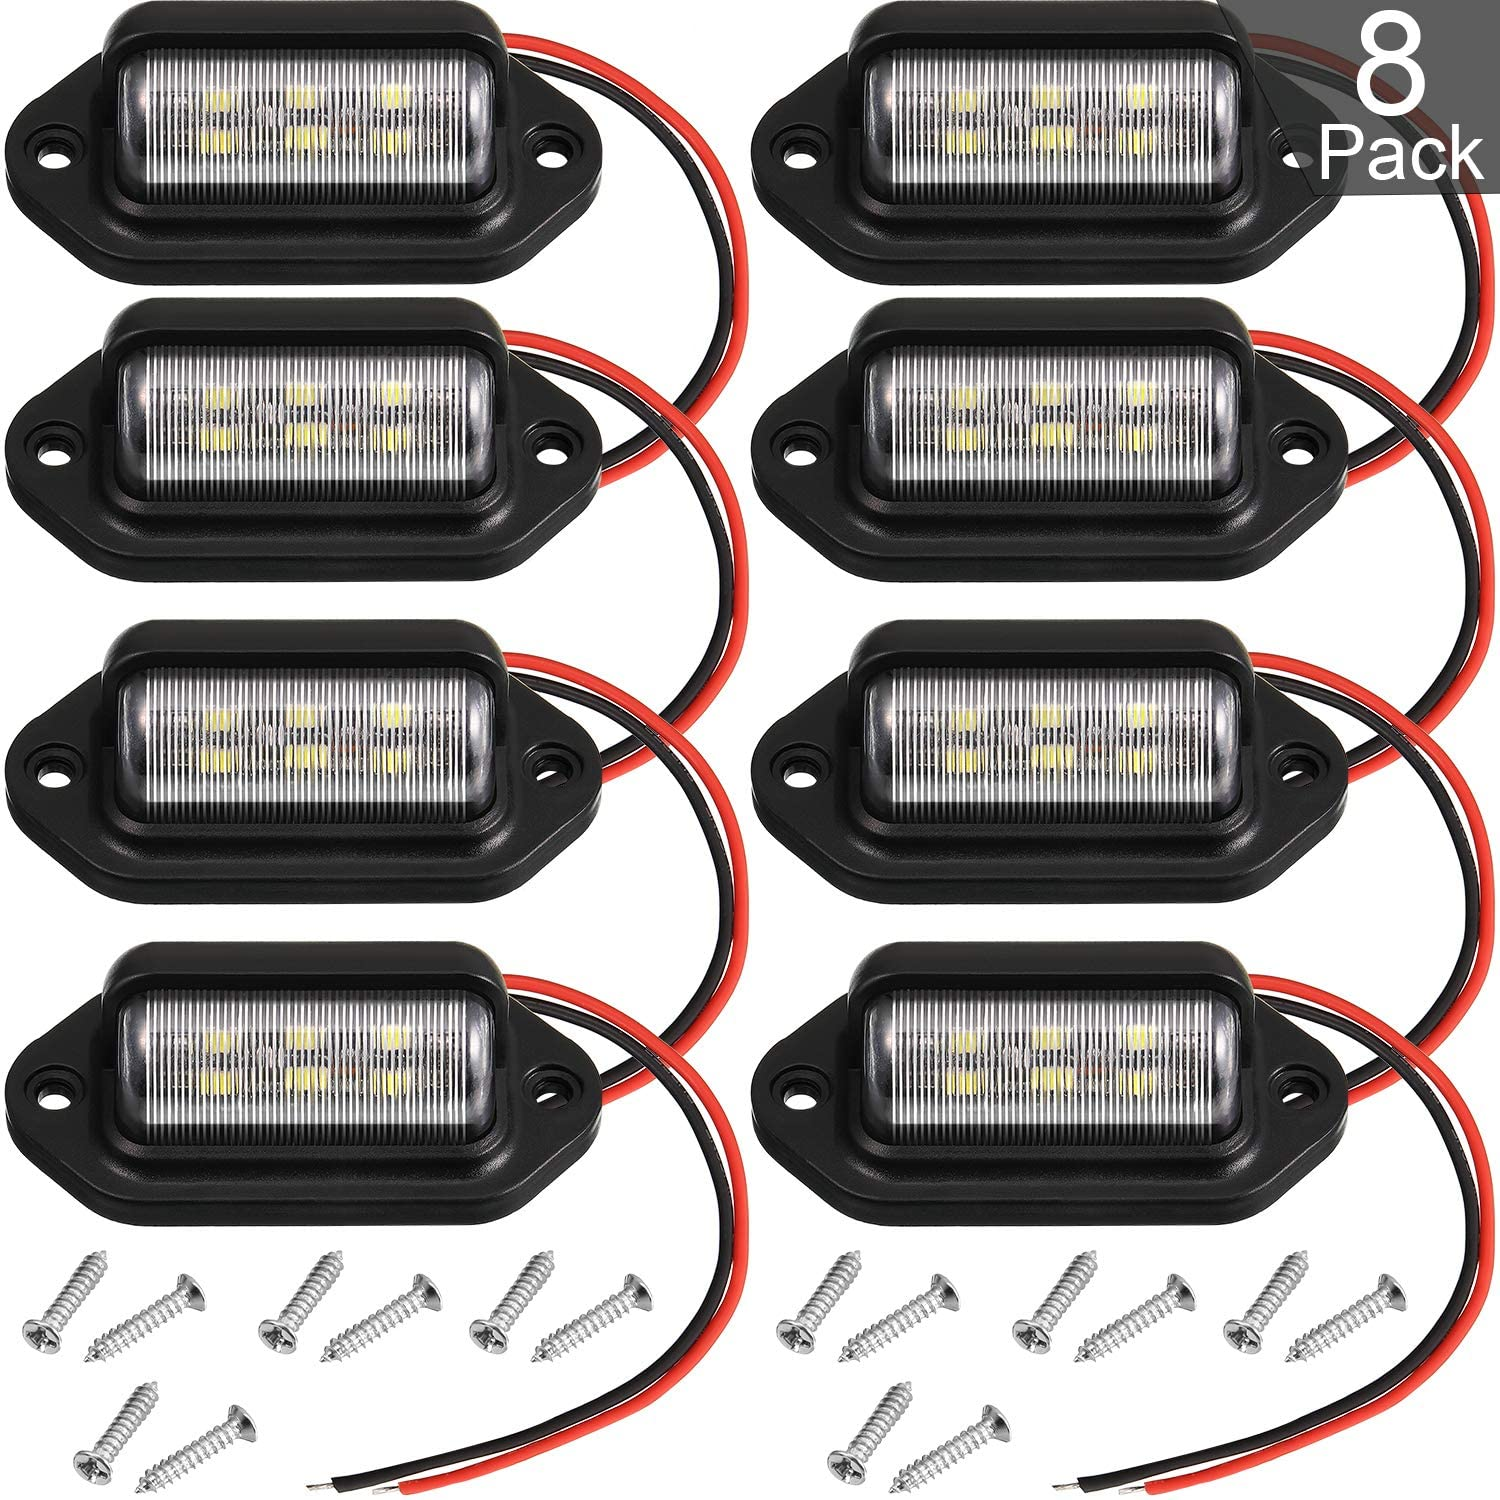 8 Packs 12V 6 LED License Plate Light Waterproof License Plate Lamp Taillight for Truck SUV Trailer Van RV Trucks and Boats License Tags